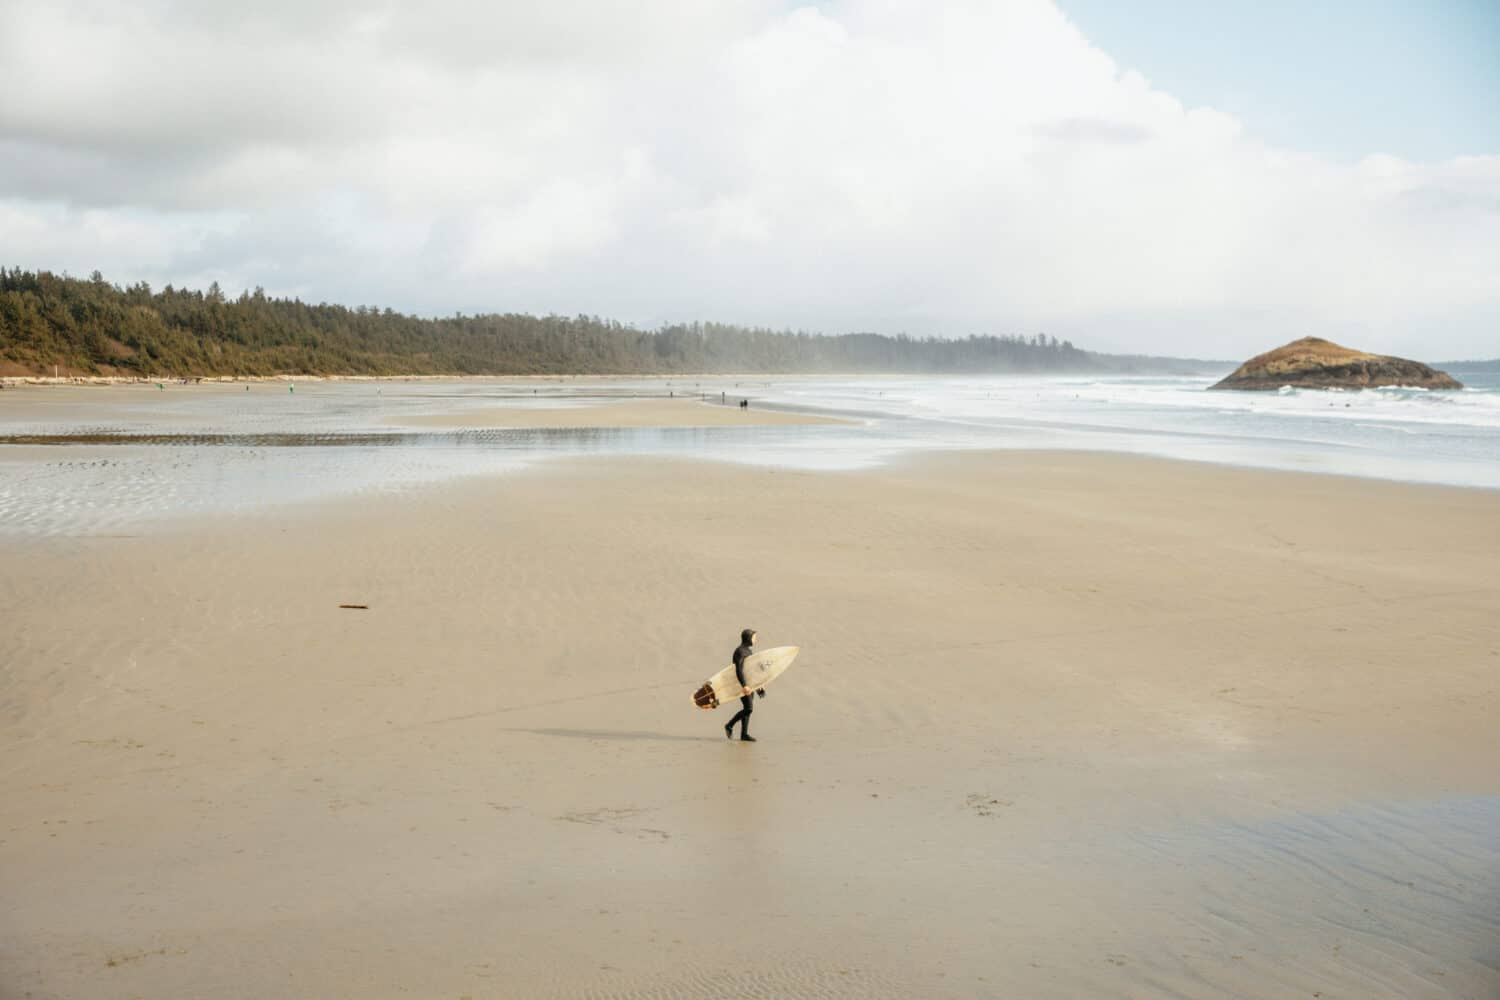 Man surfing in Tofino, BC